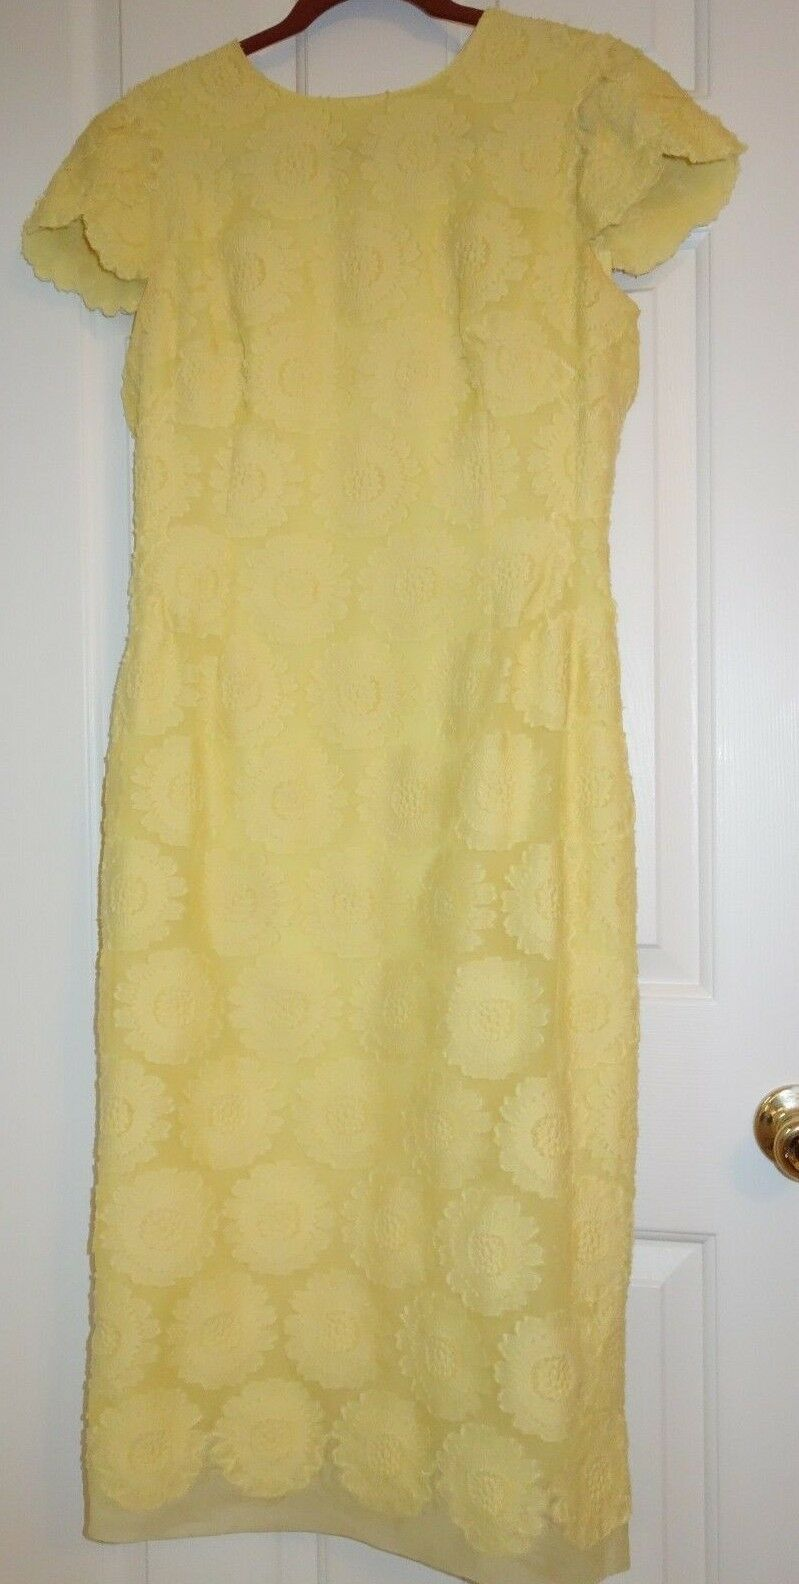 ERMANNO SCERVINO  WOMEN'S DRESS sz. US 10 IT 46 MADE IN ITALY